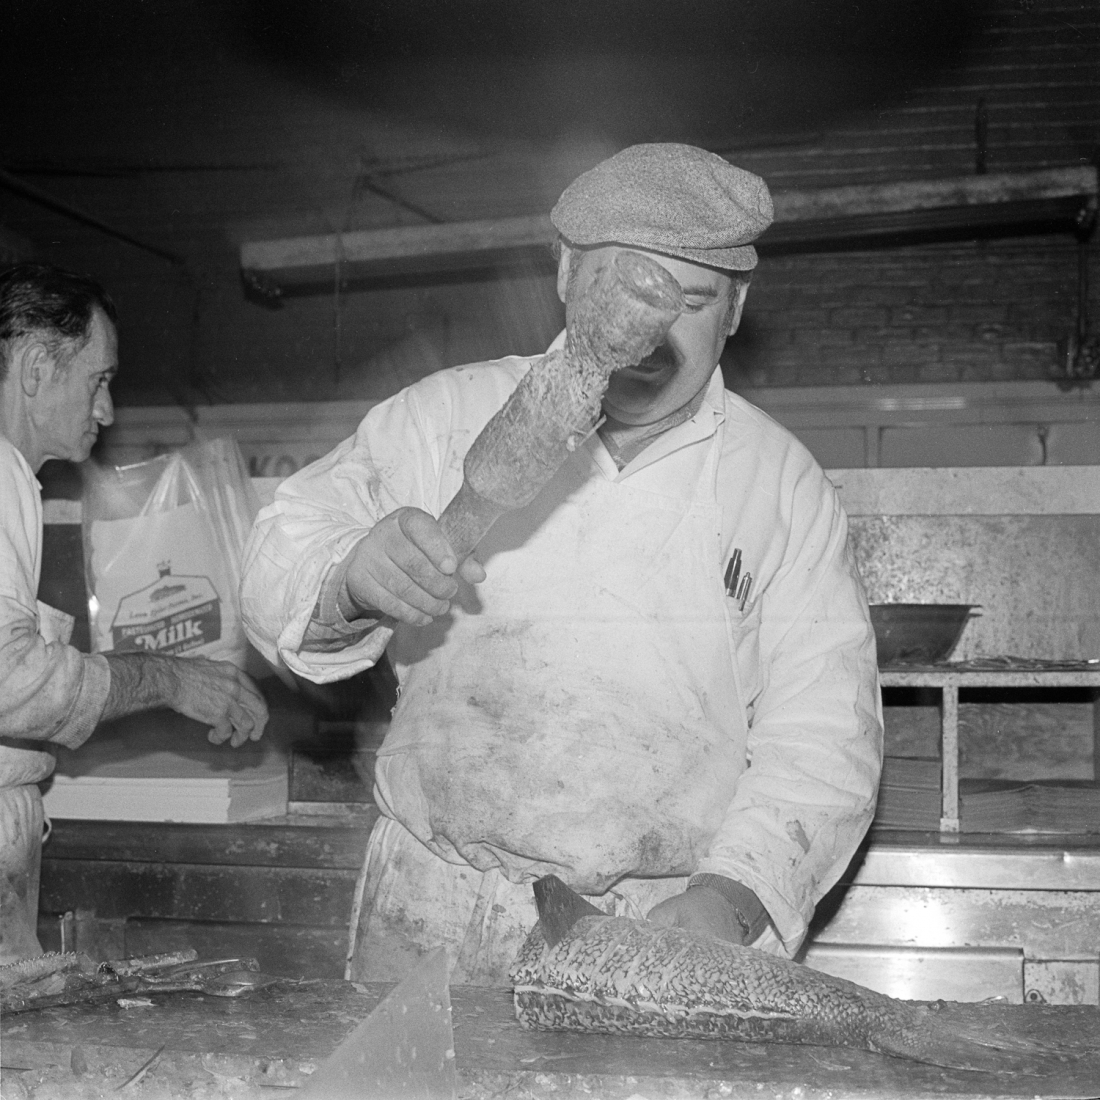 Slicing Fish at the Essex Street Market, NY, March 1978 © Meryl Meisler